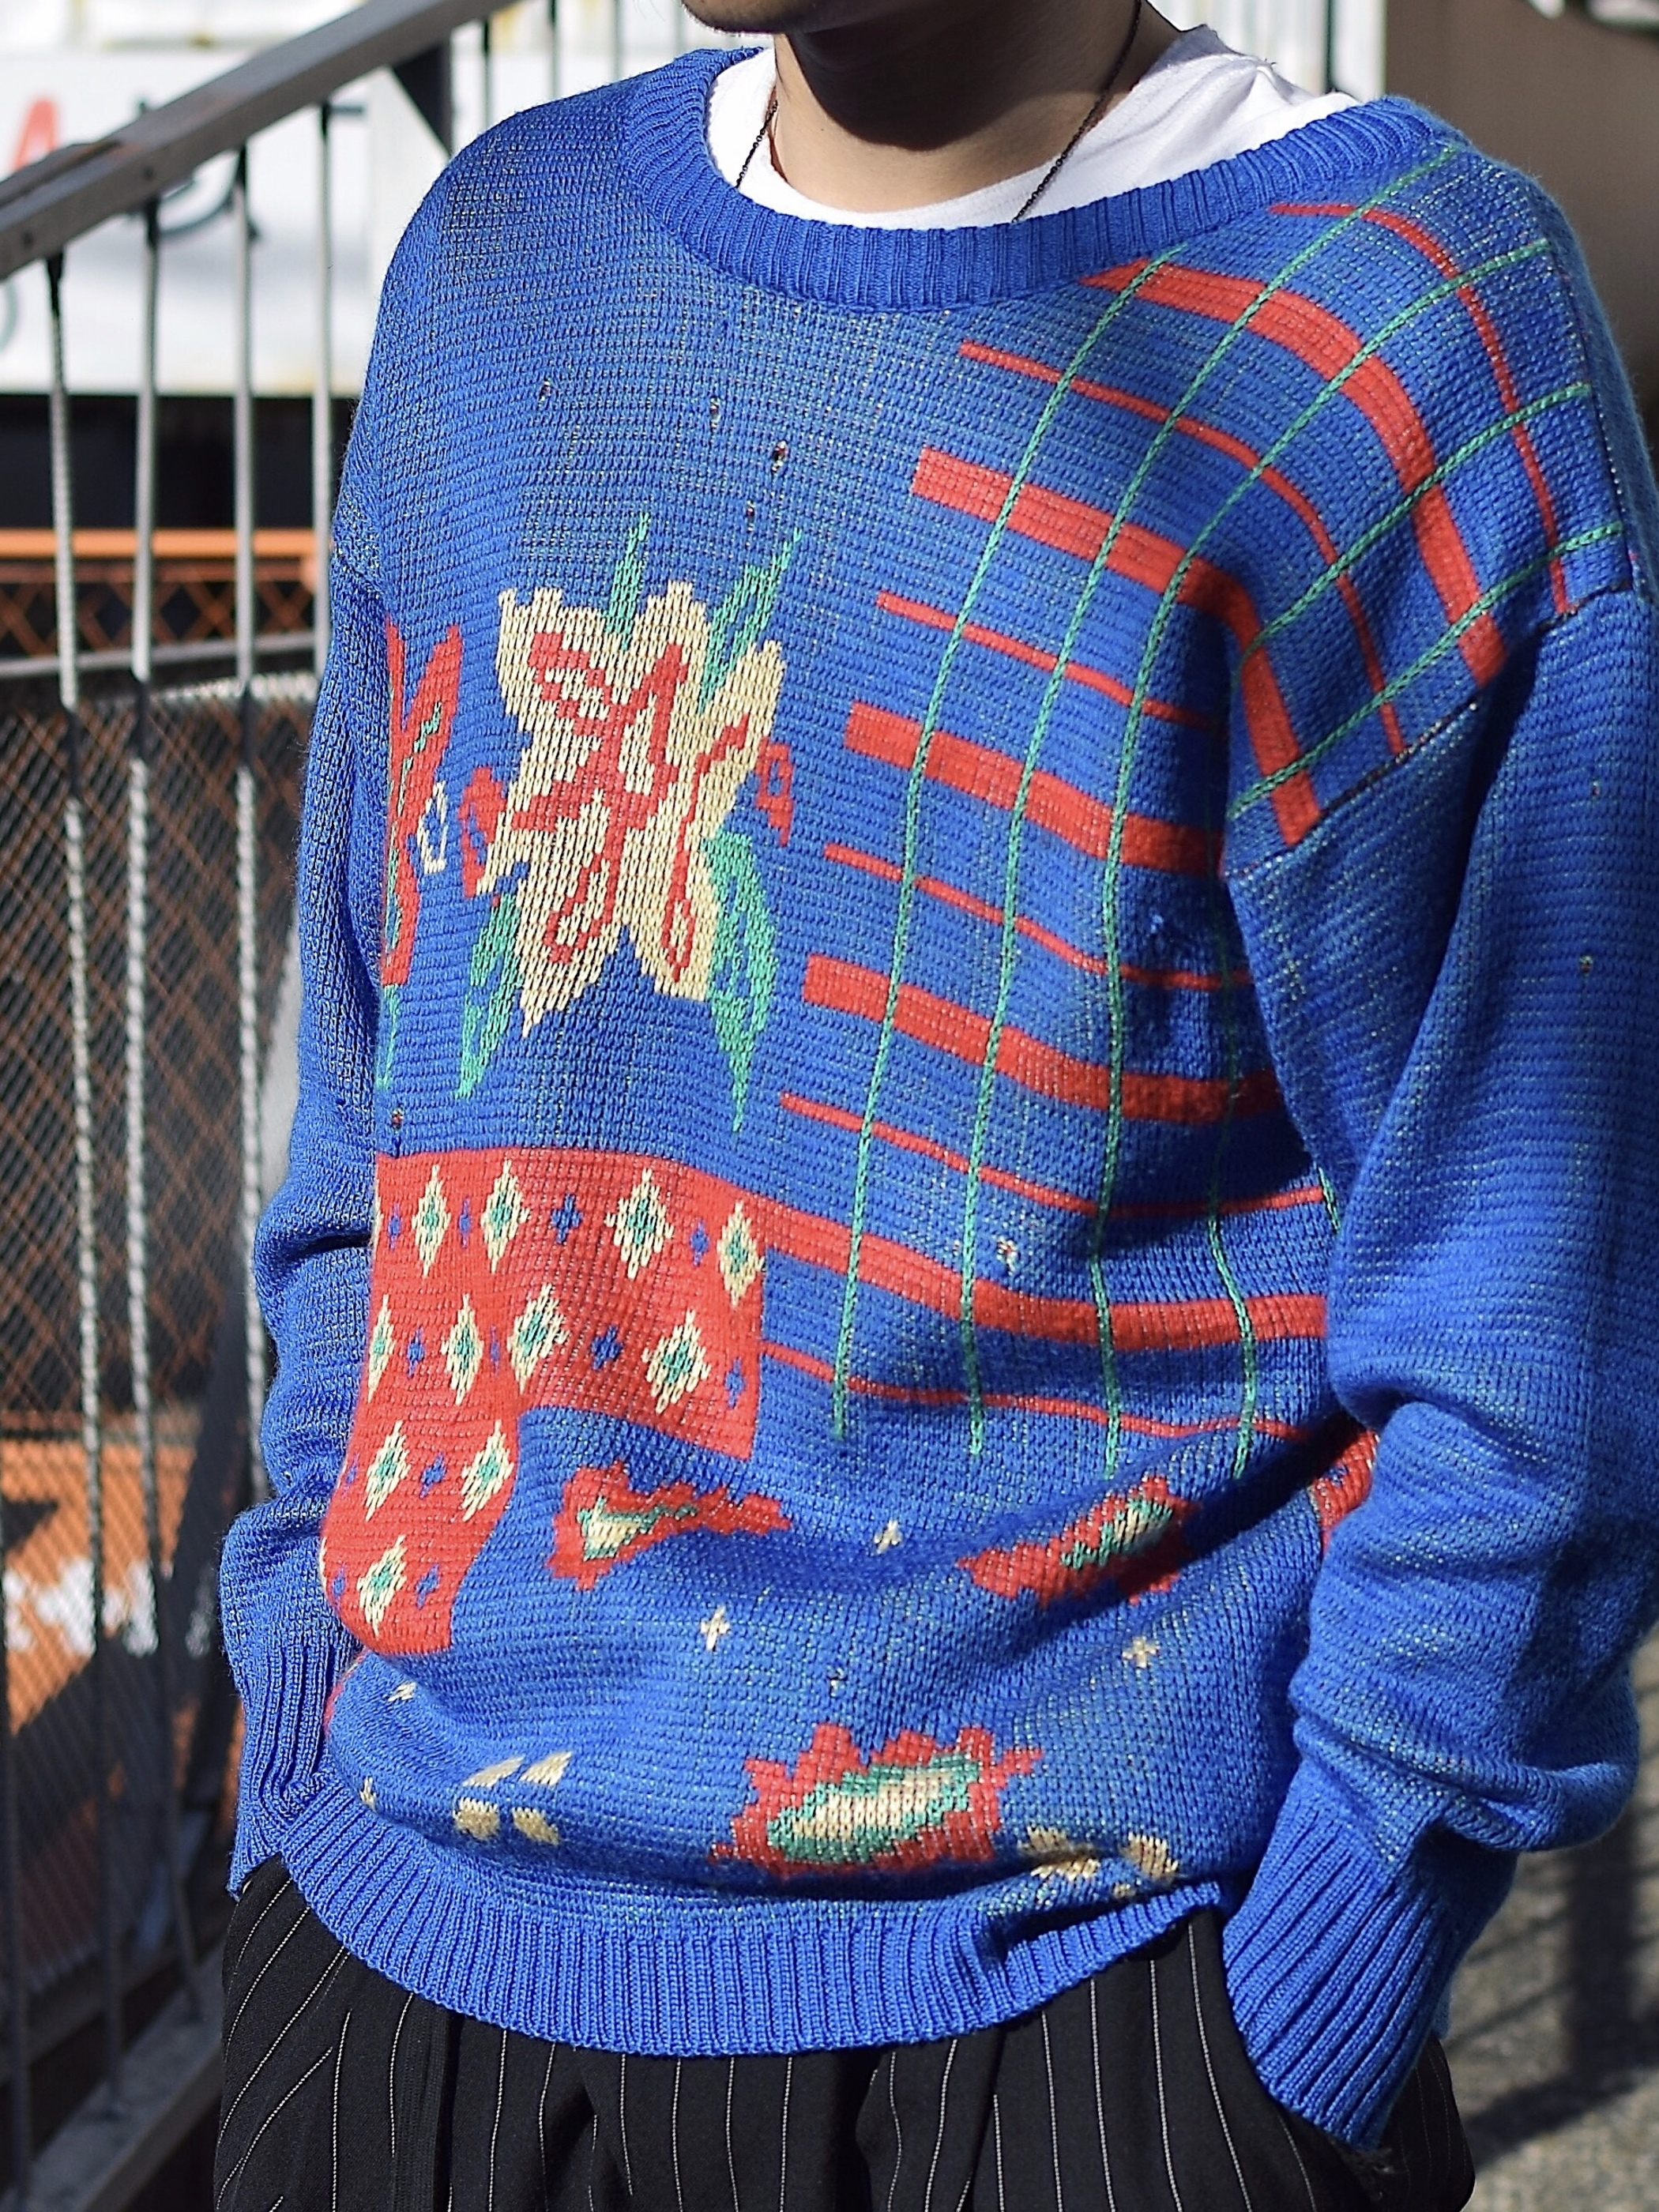 Vintage【Hewlett】Damage Knit